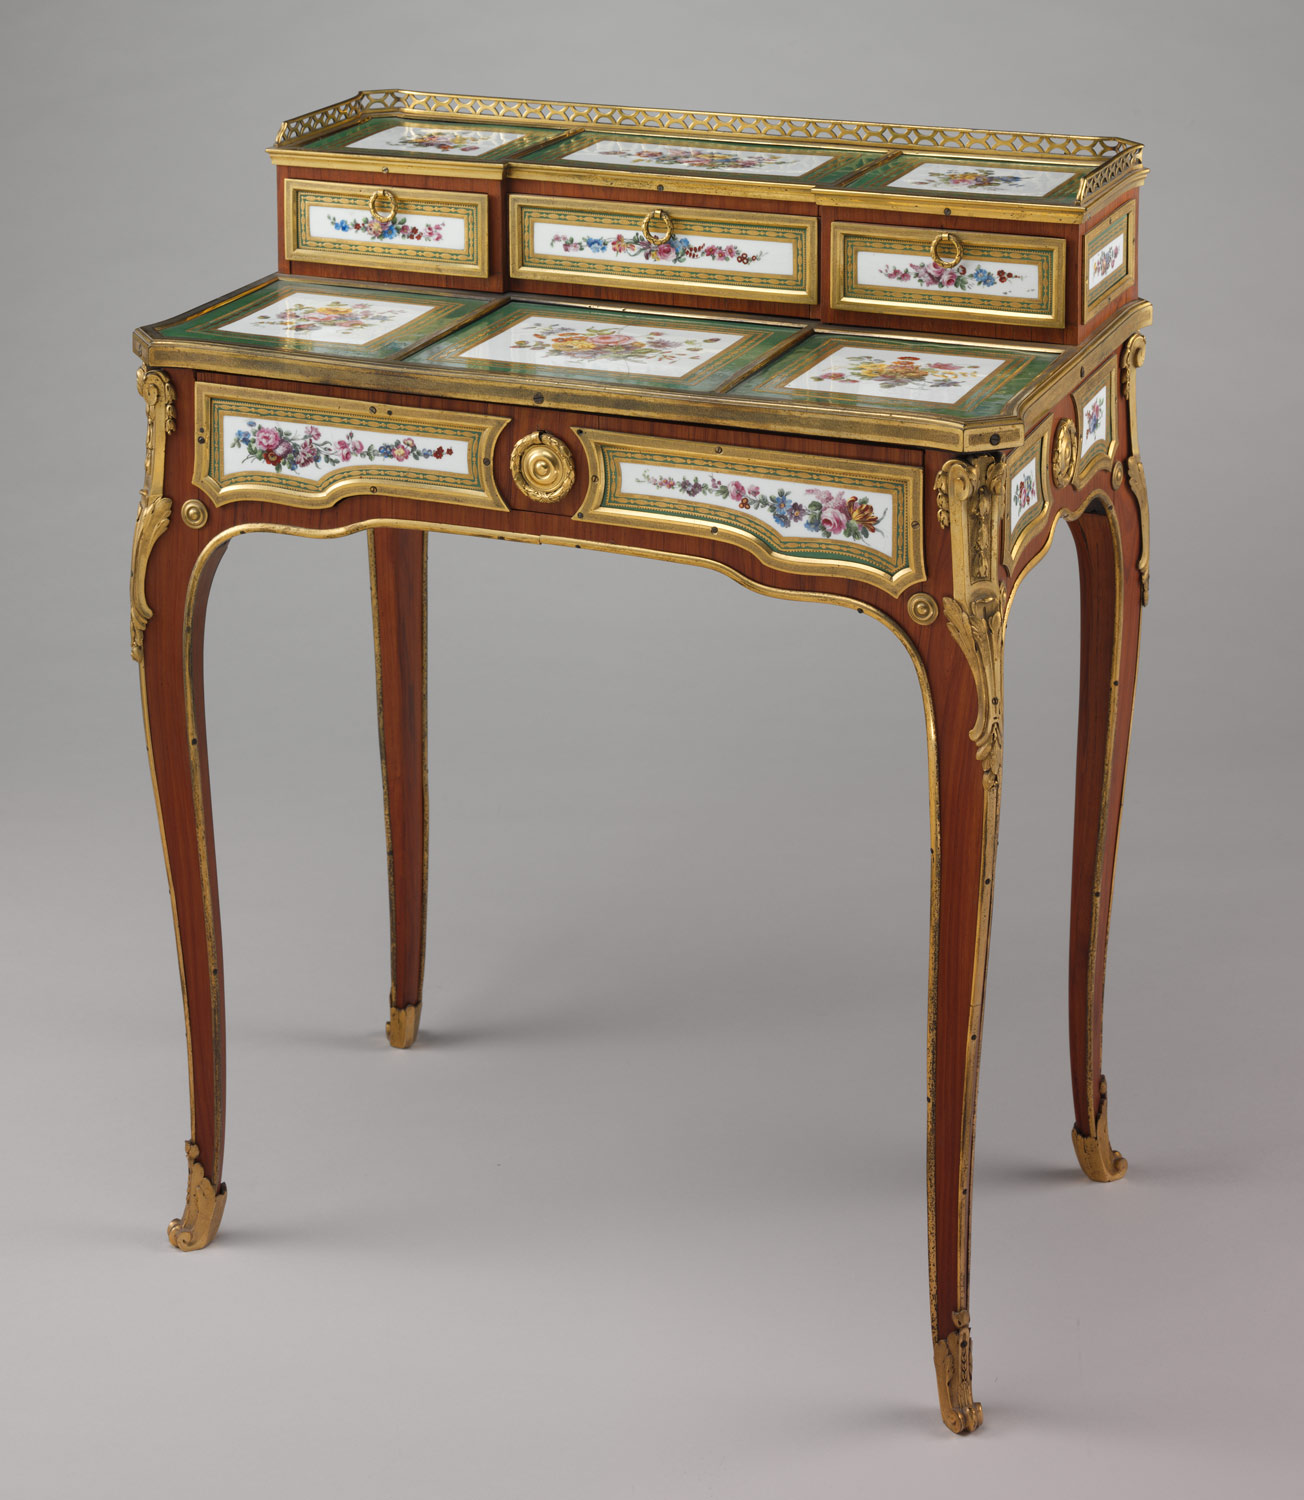 French Furniture In The Eighteenth Century Case Furniture